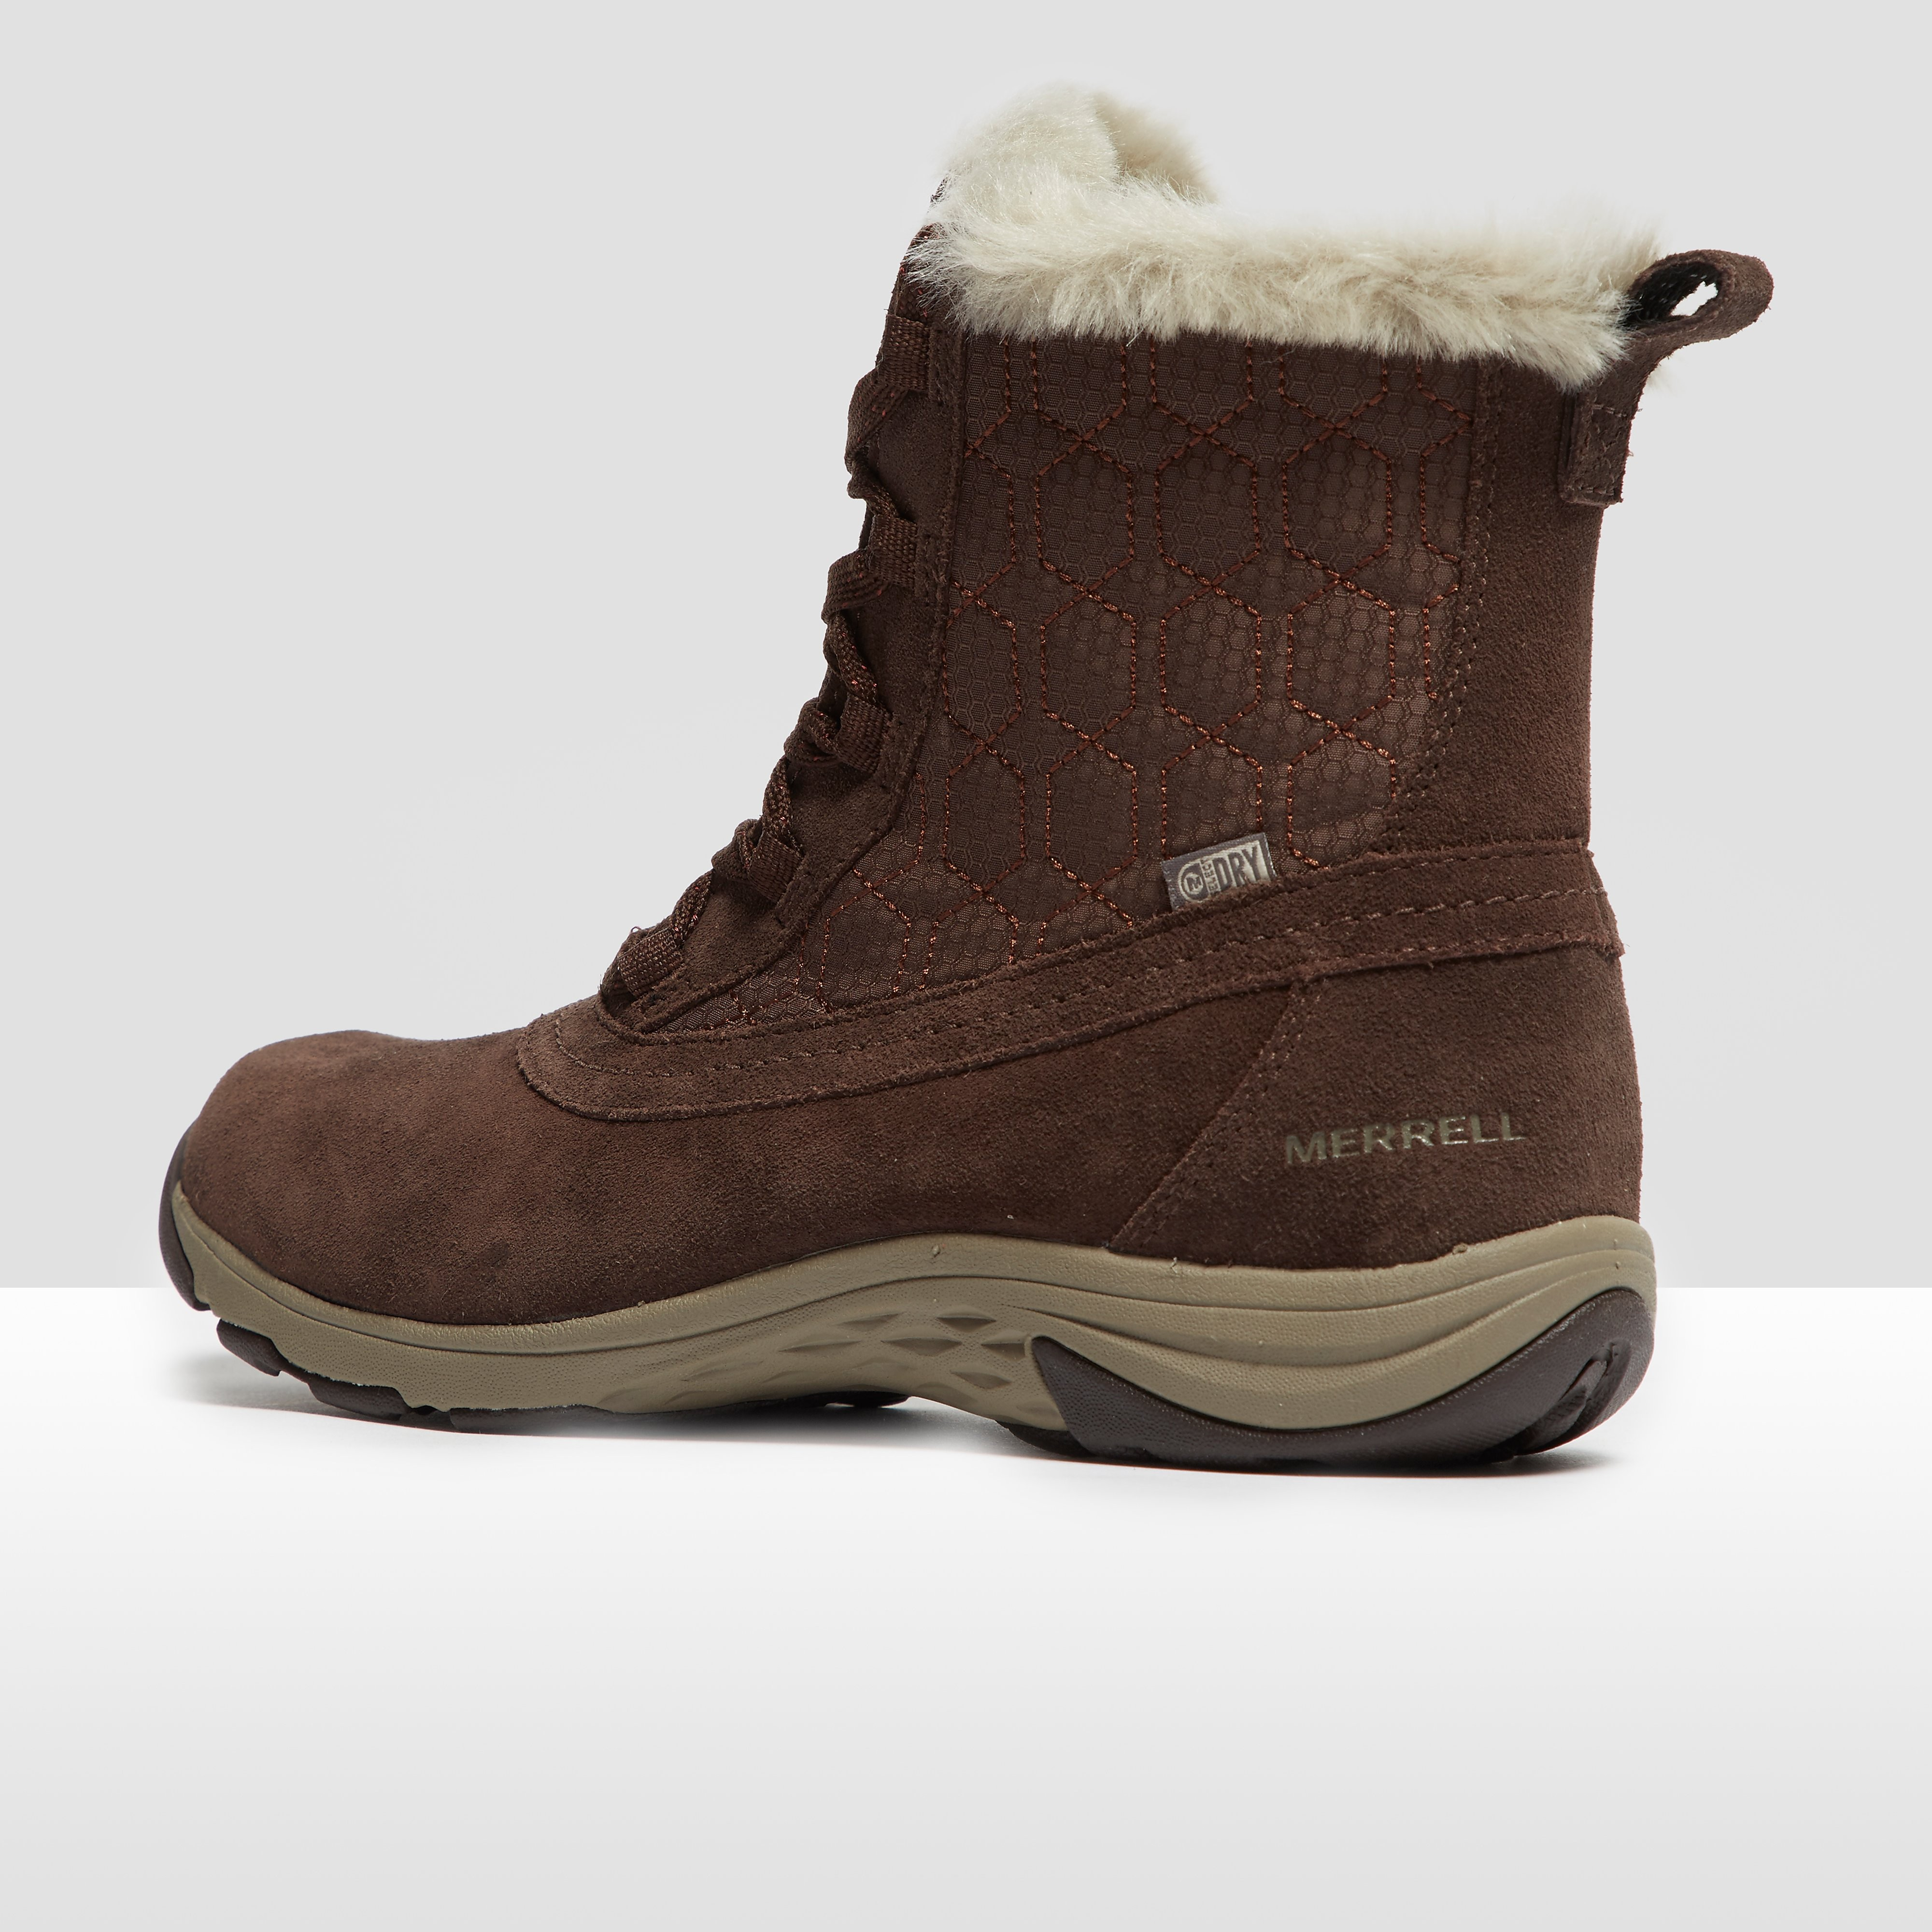 Merrell SNOWBOUND MID WATERPROOF Women's Boots